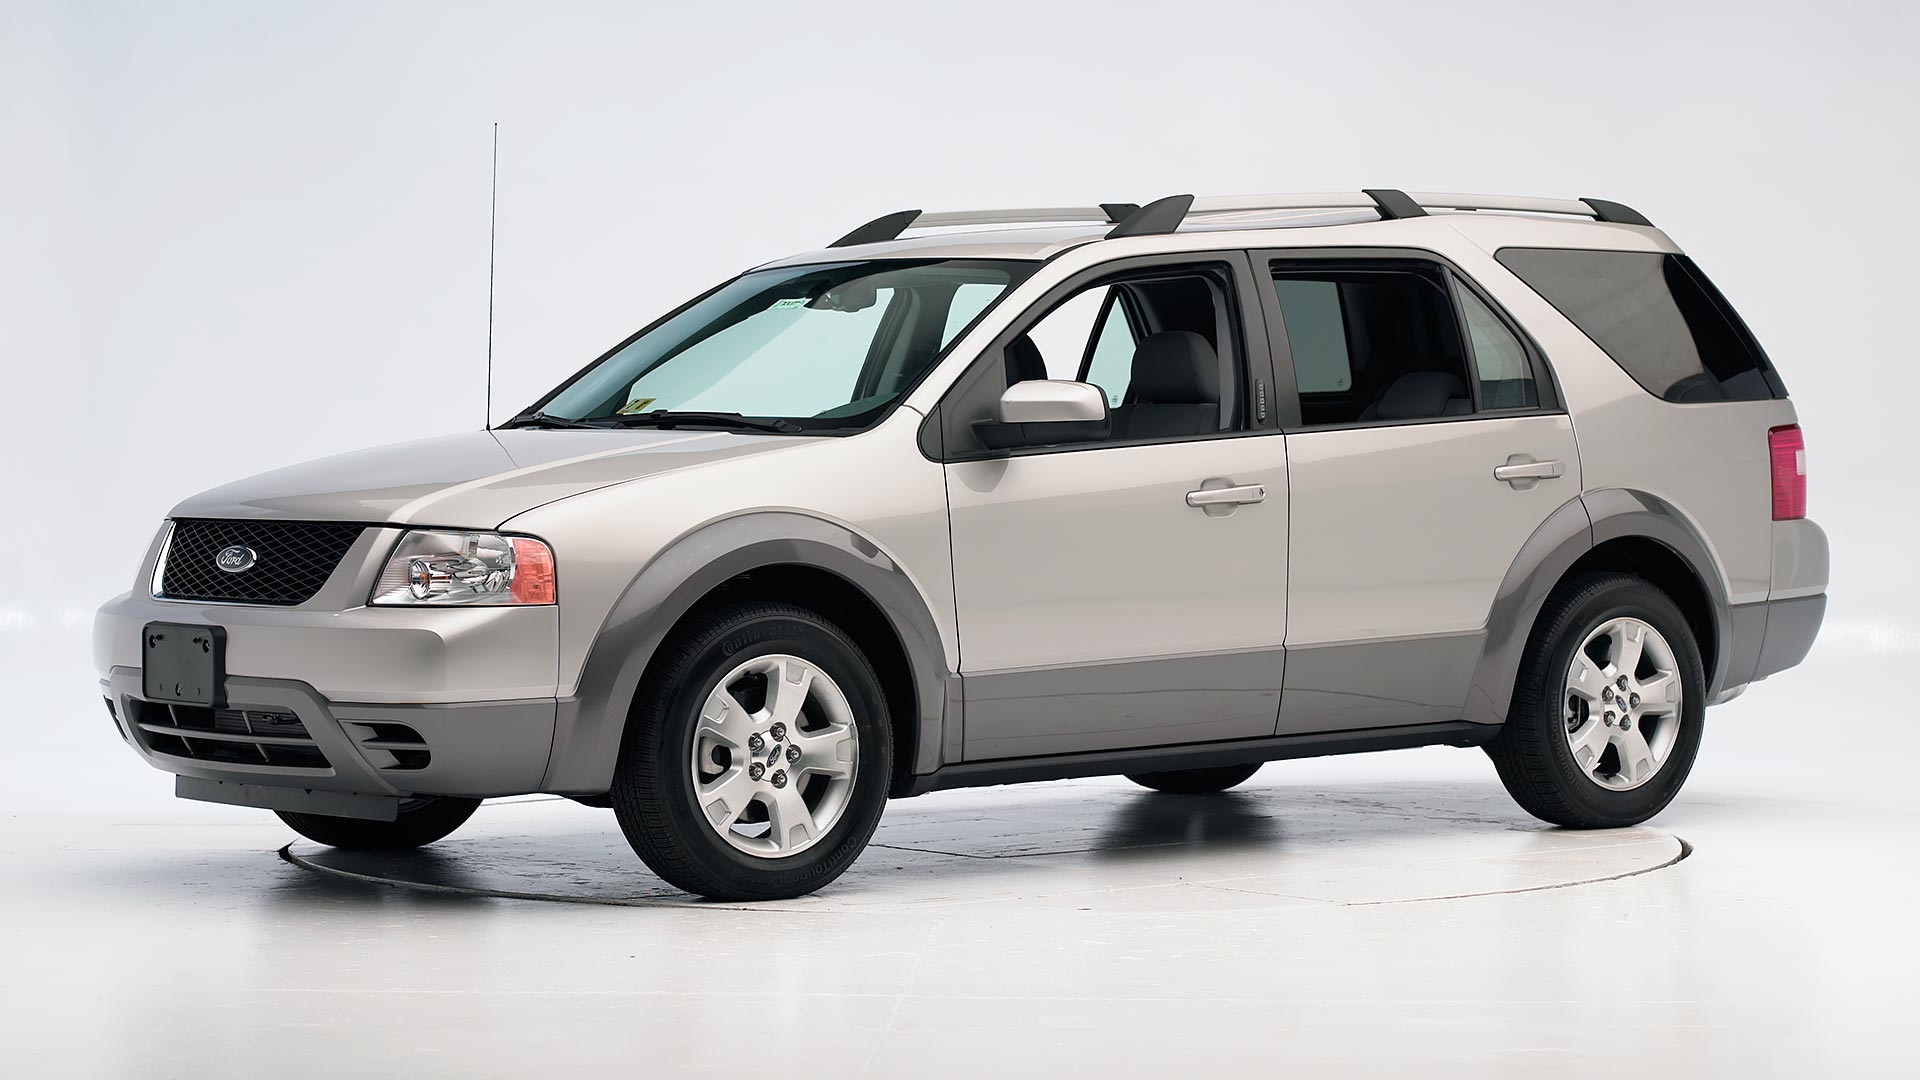 2007 Ford Freestyle 4-door SUV